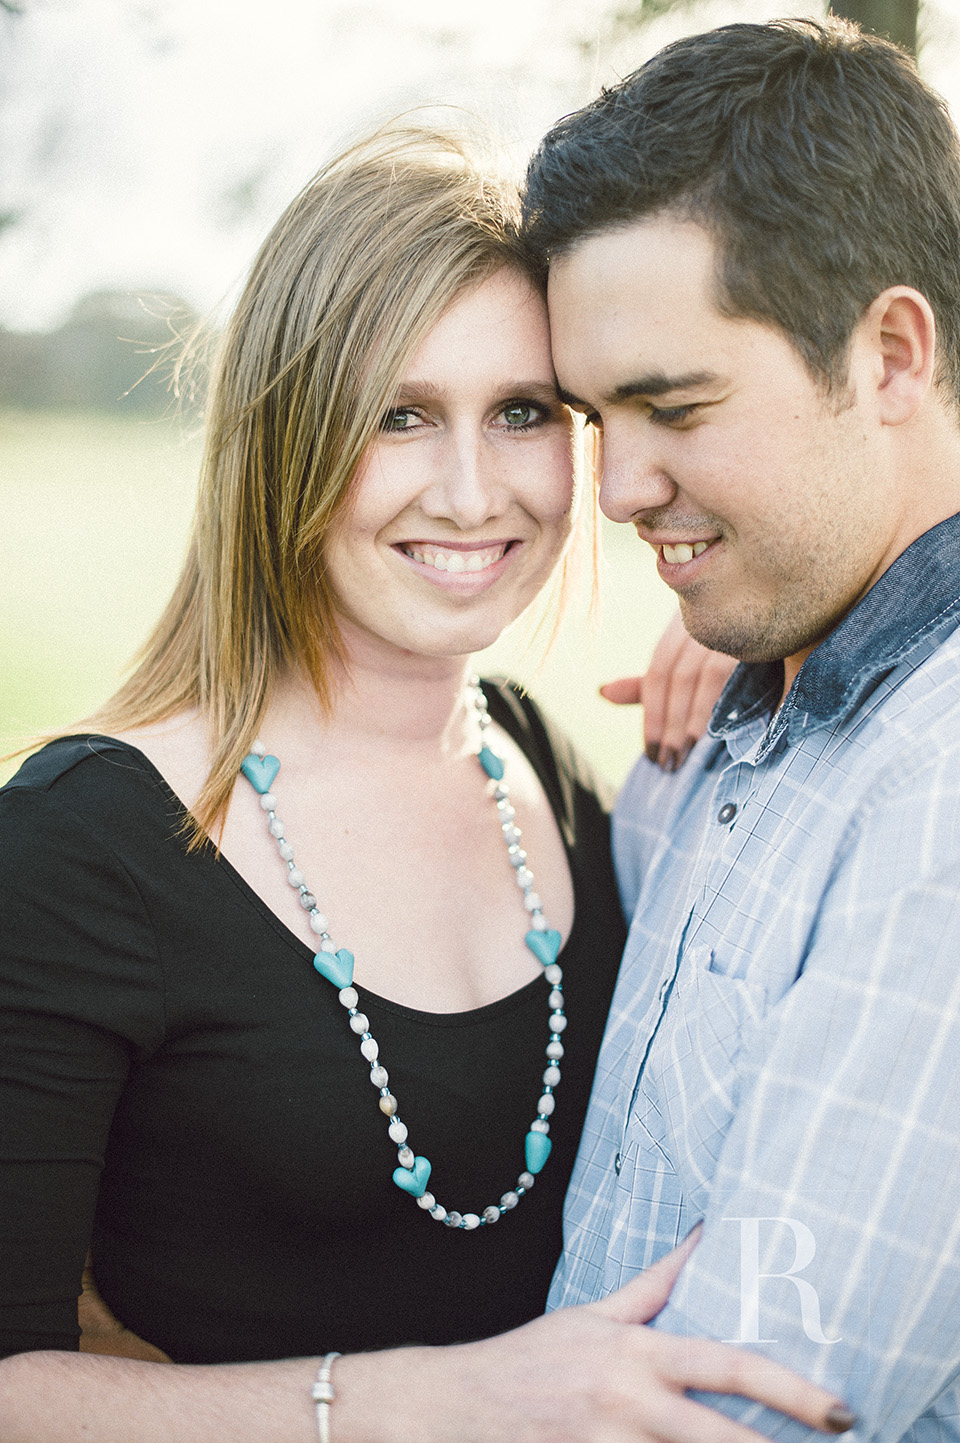 RYAN PARKER PHOTOGRAPHY_ANG & ANT_ENGAGEMENT SESSION_PRETORIA DSC_3256.jpg